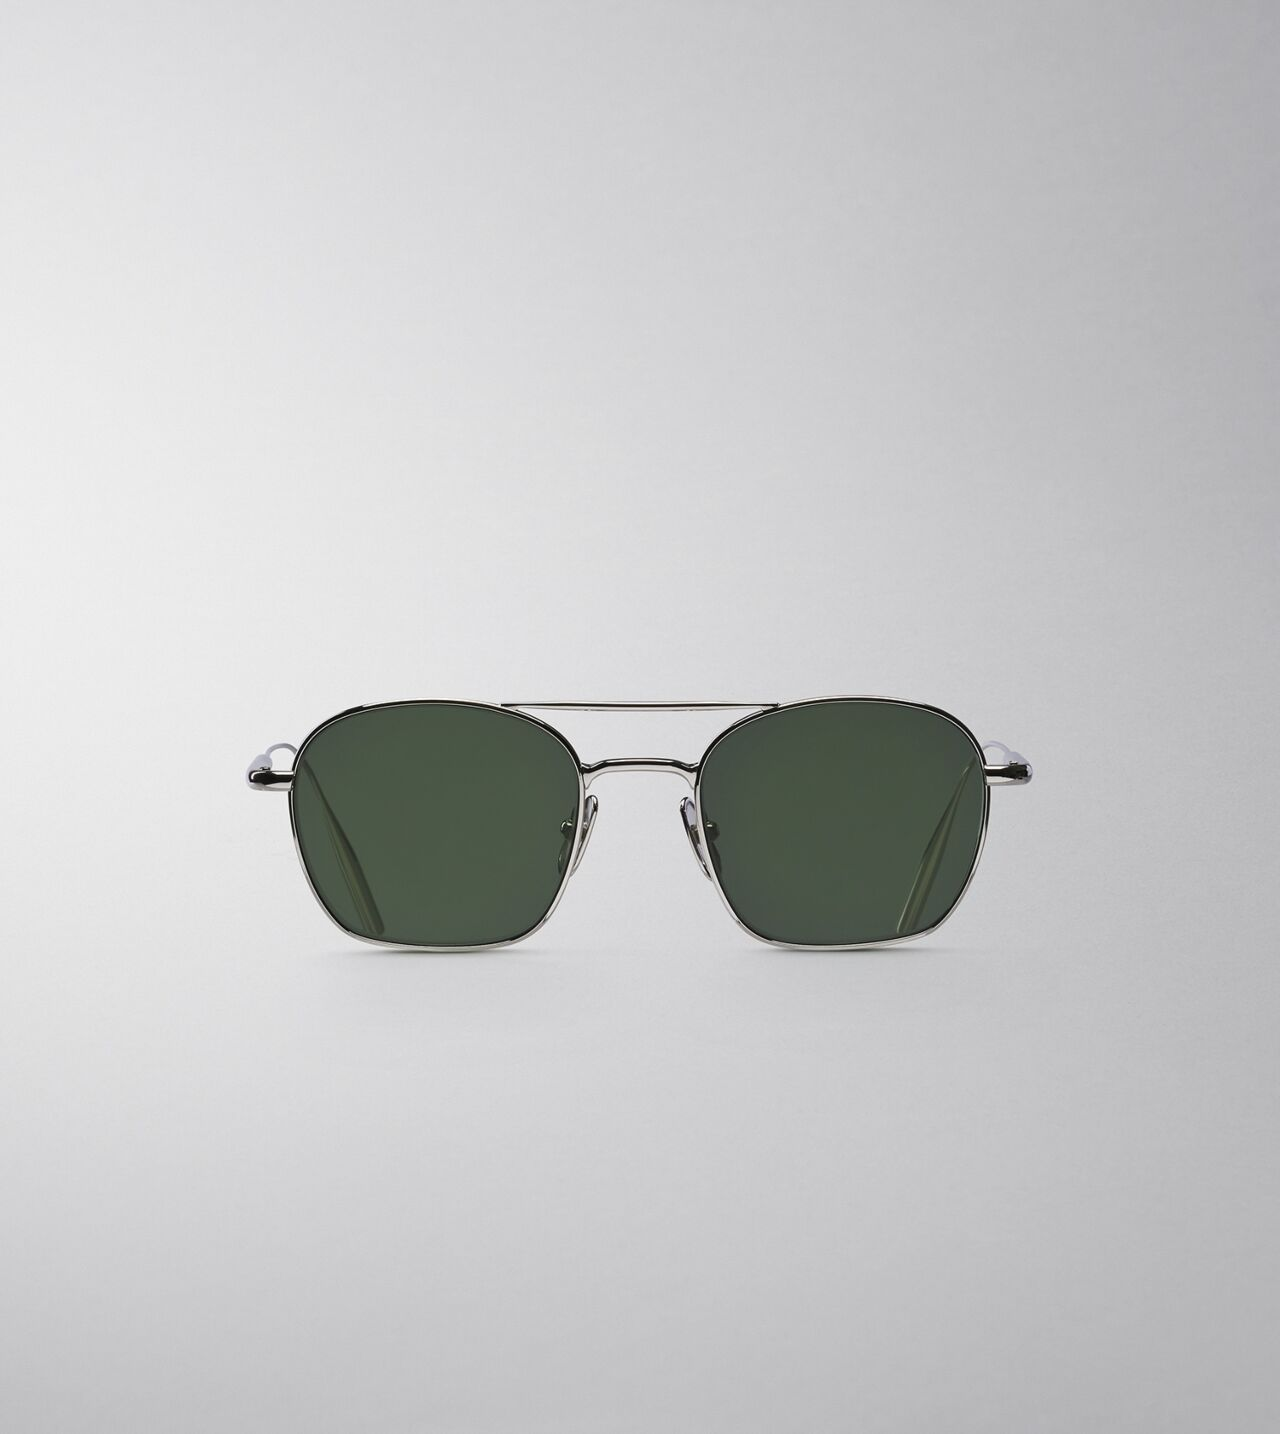 Picture of Byredo The Engineer in Palladium green